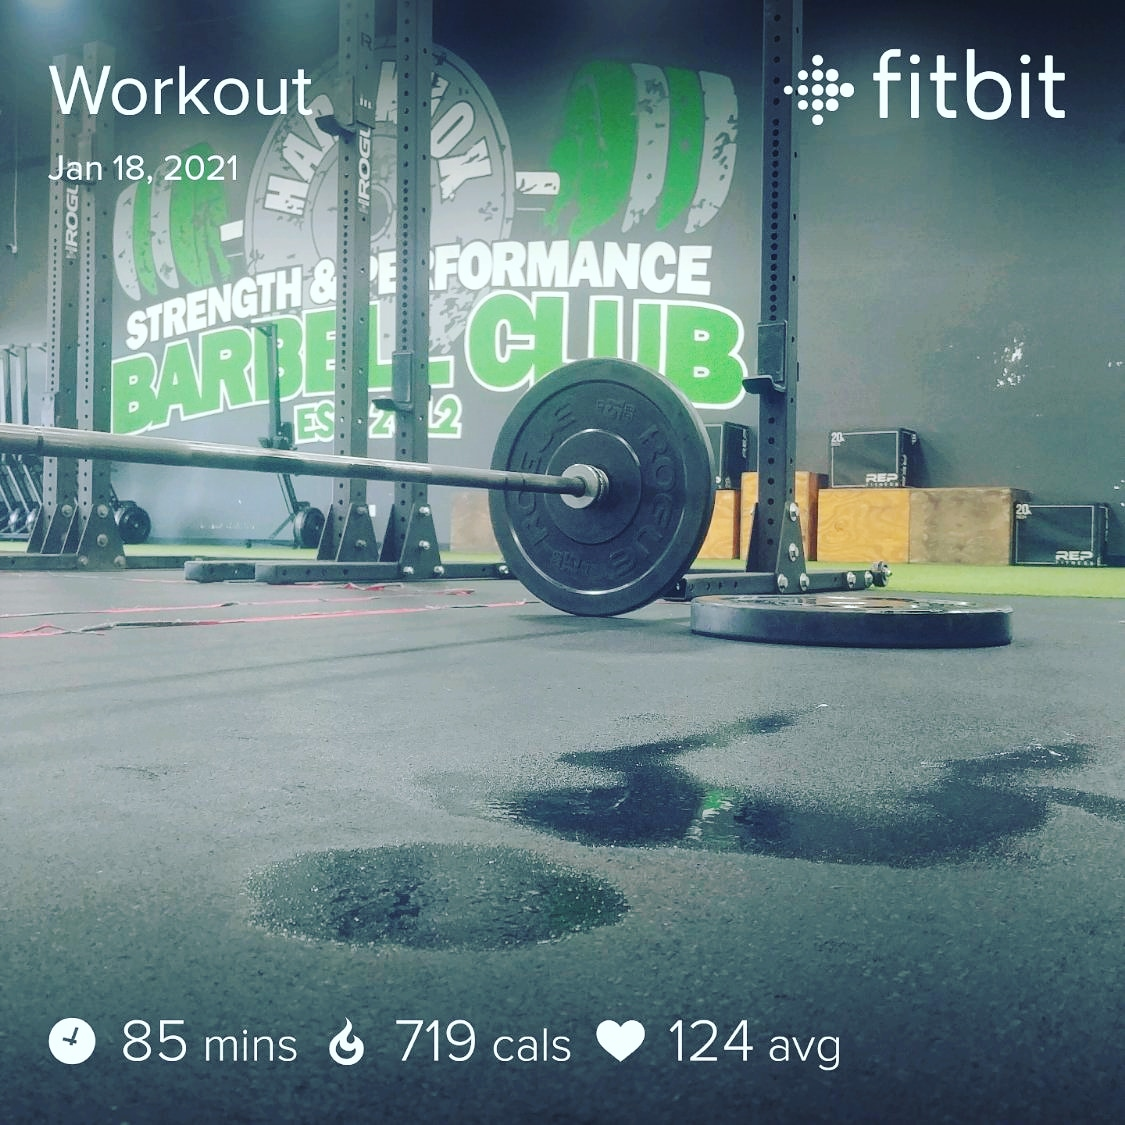 #workout #puddle 👊 😰😰😰 🏋🏋🏋 💪💪💪 #strictpress #frontsquats #jumpsquats #running #thrusters #Russiantwists #vups #gym #barbell #plate #workoutmotivation #HardknoxMornings #HardknoxStrong #ElBuckets #TeamULTRA #LiveULTRA #doitforthecheers #MondayMotivation #MondayMadness